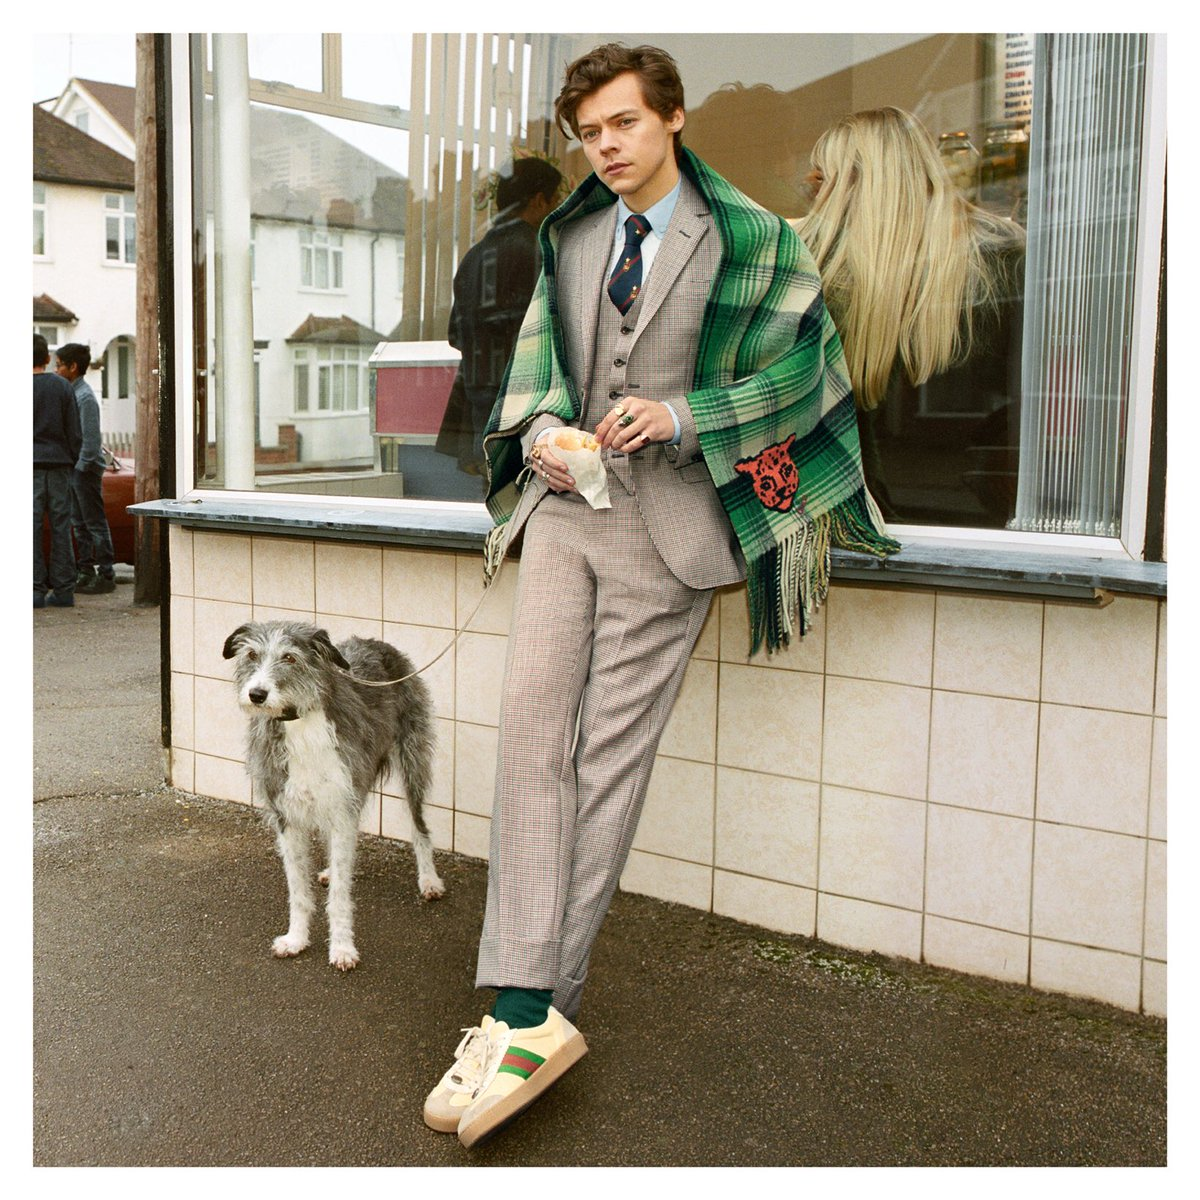 Harry Styles Gucci Campaign